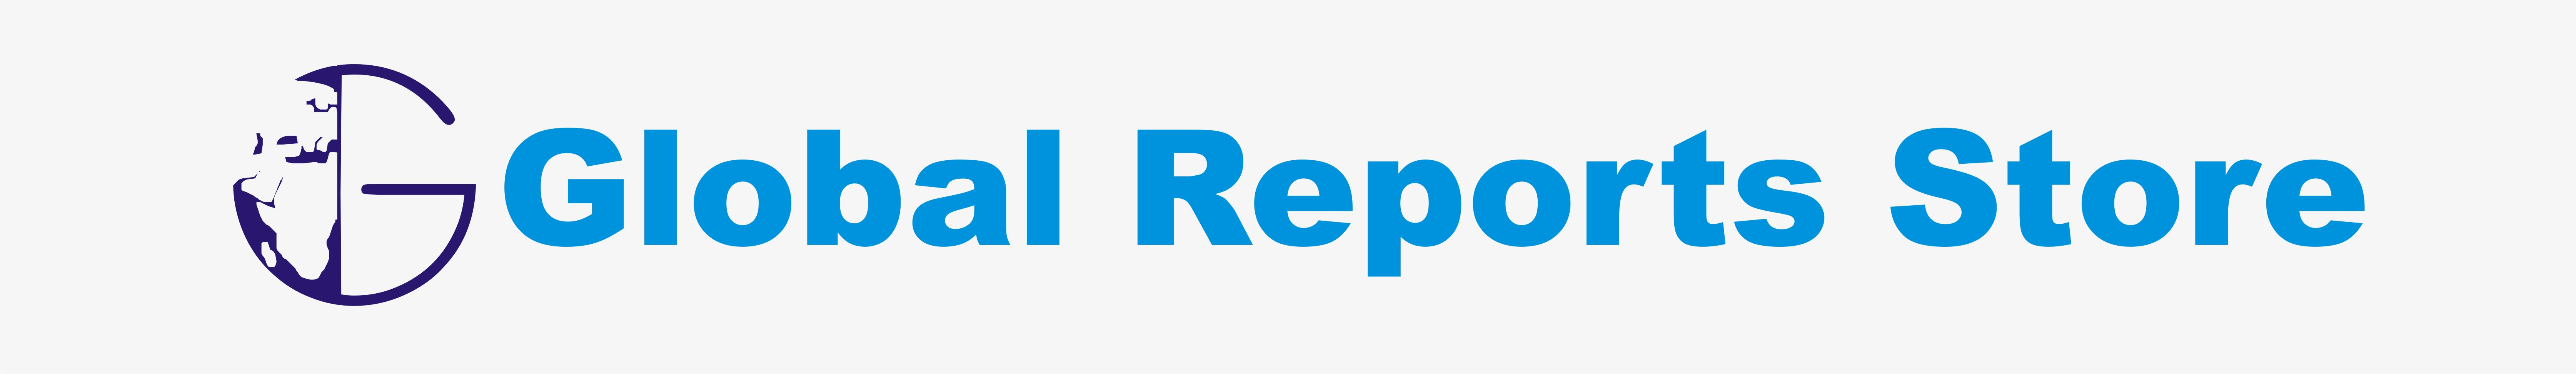 Global Reports Store